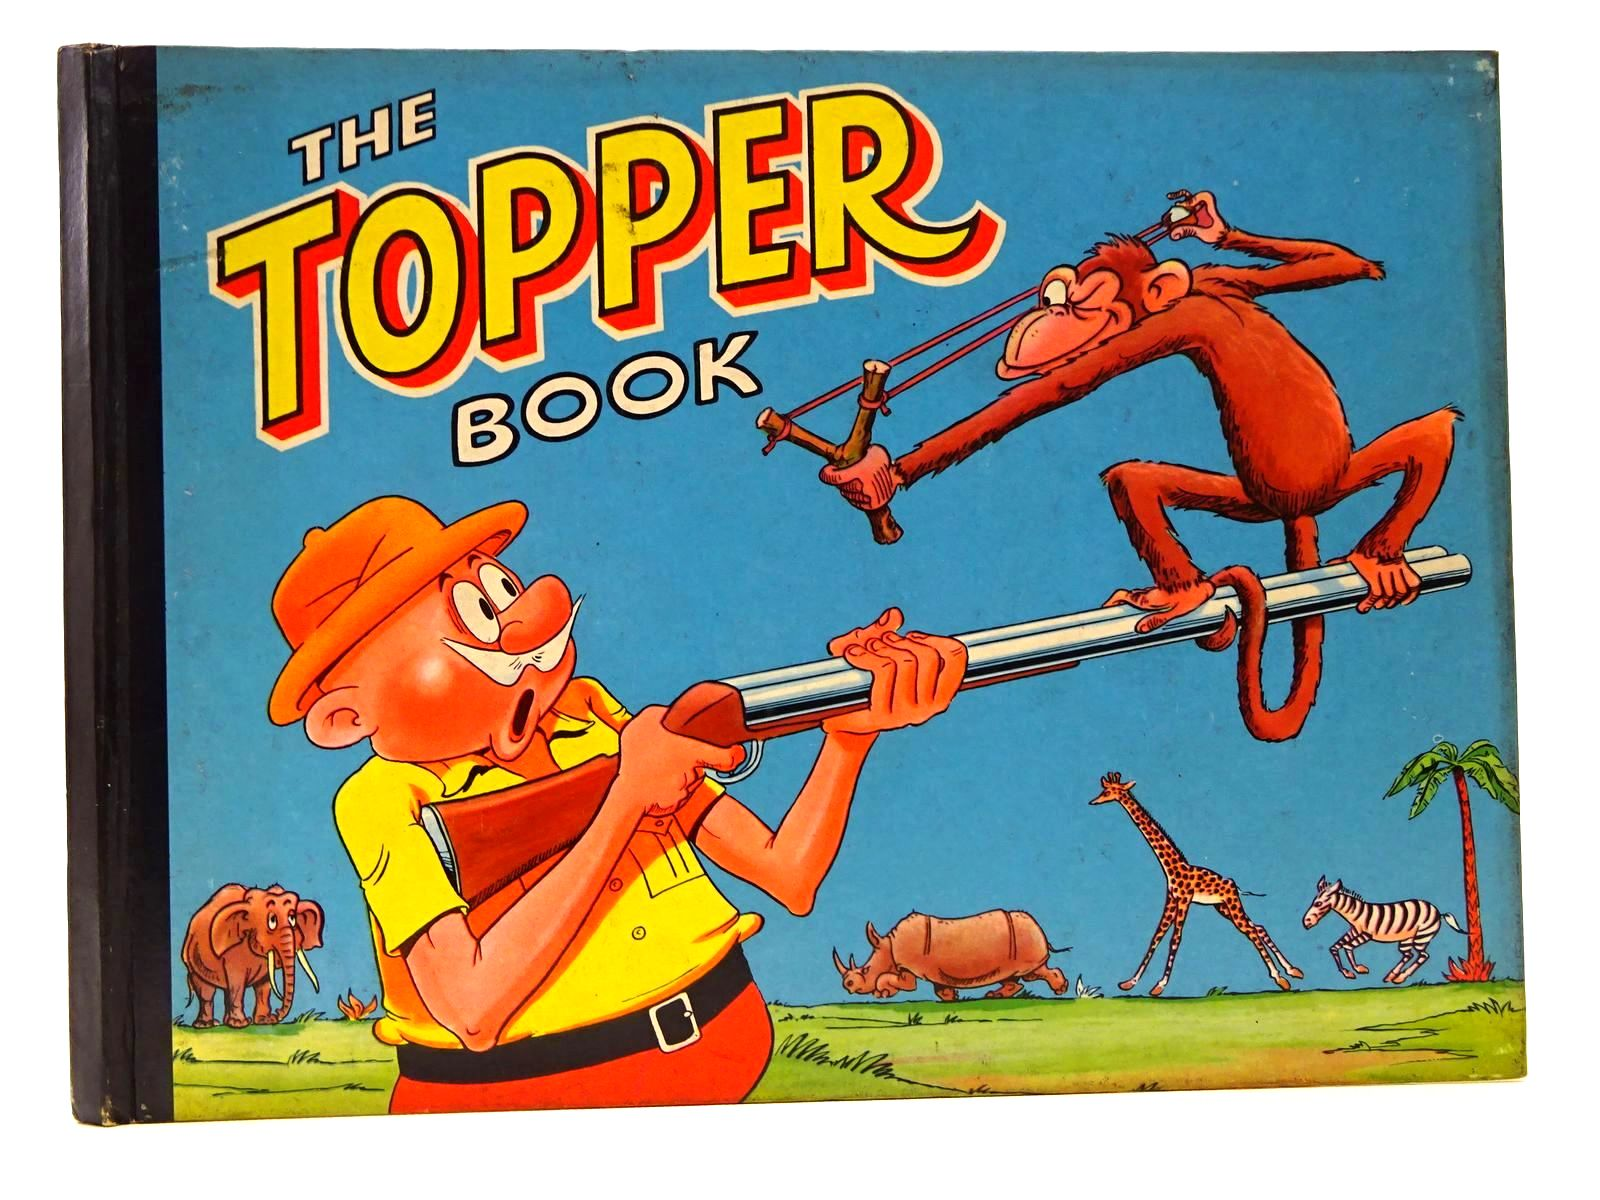 Photo of THE TOPPER BOOK 1959 published by D.C. Thomson & Co Ltd., John Leng (STOCK CODE: 2124635)  for sale by Stella & Rose's Books